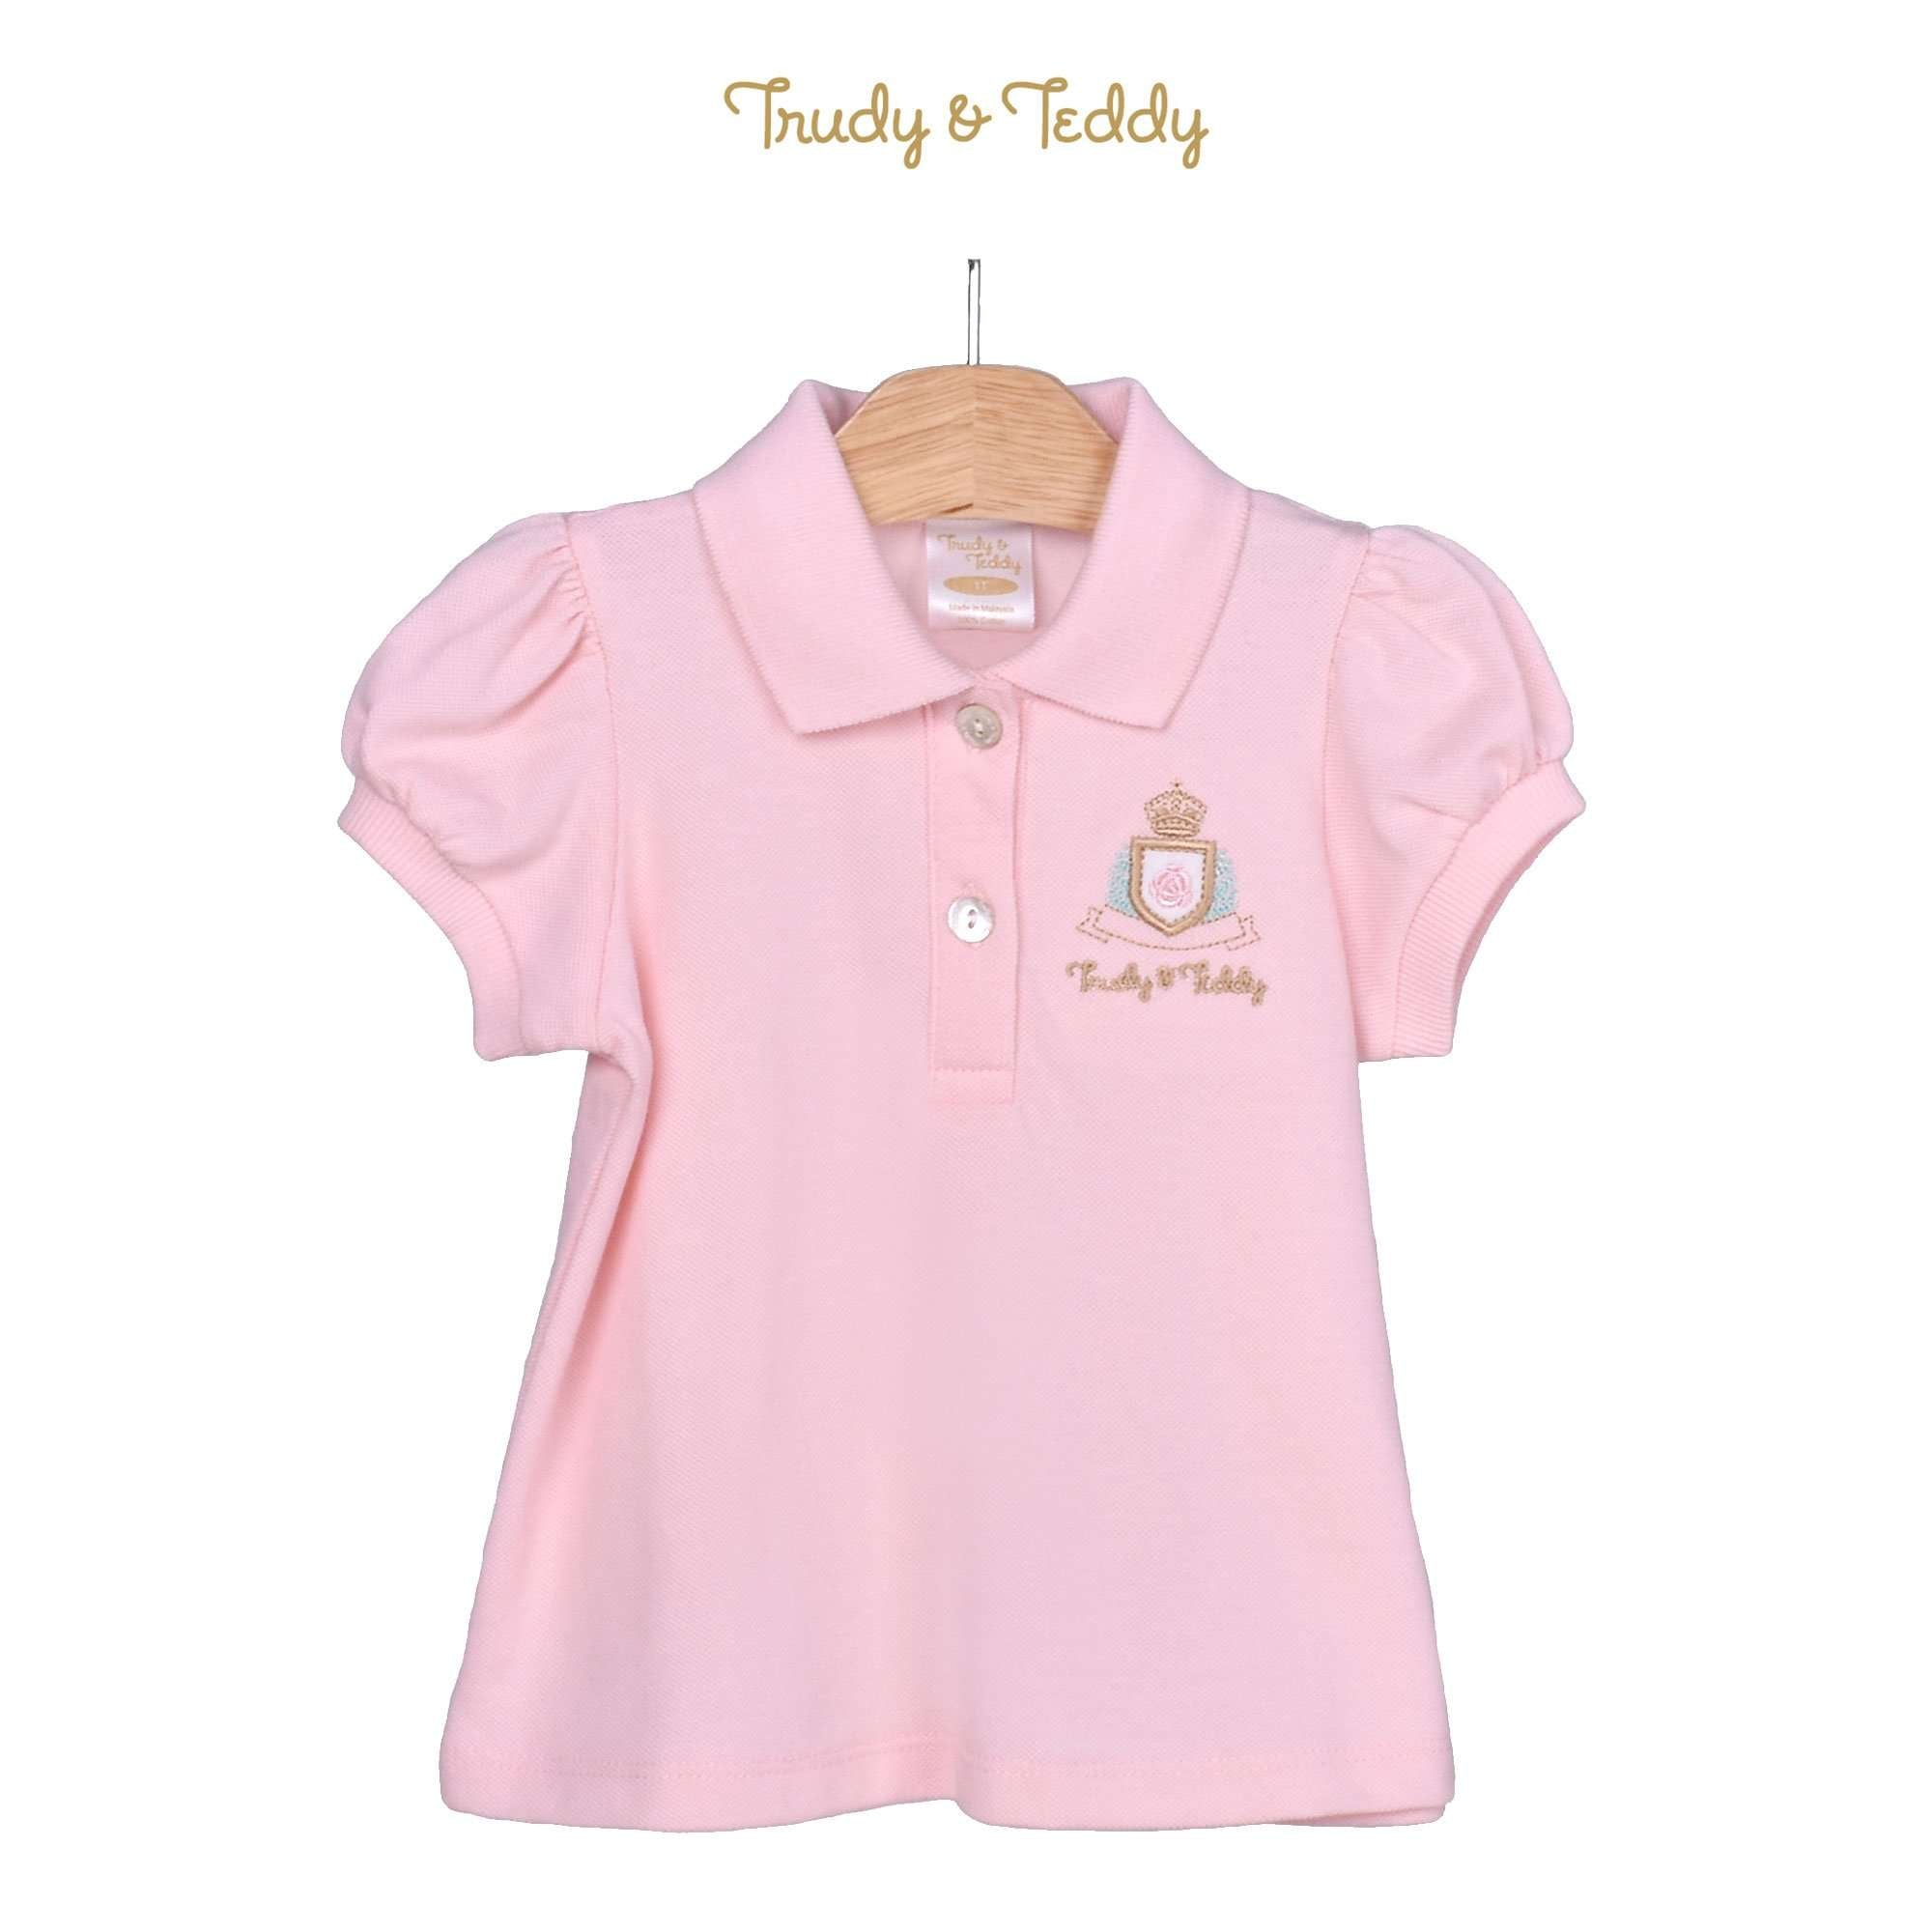 Trudy & Teddy Toddler Girl Knit Short Sleeve Collar Tee 825049-121 : Buy Trudy & Teddy online at CMG.MY